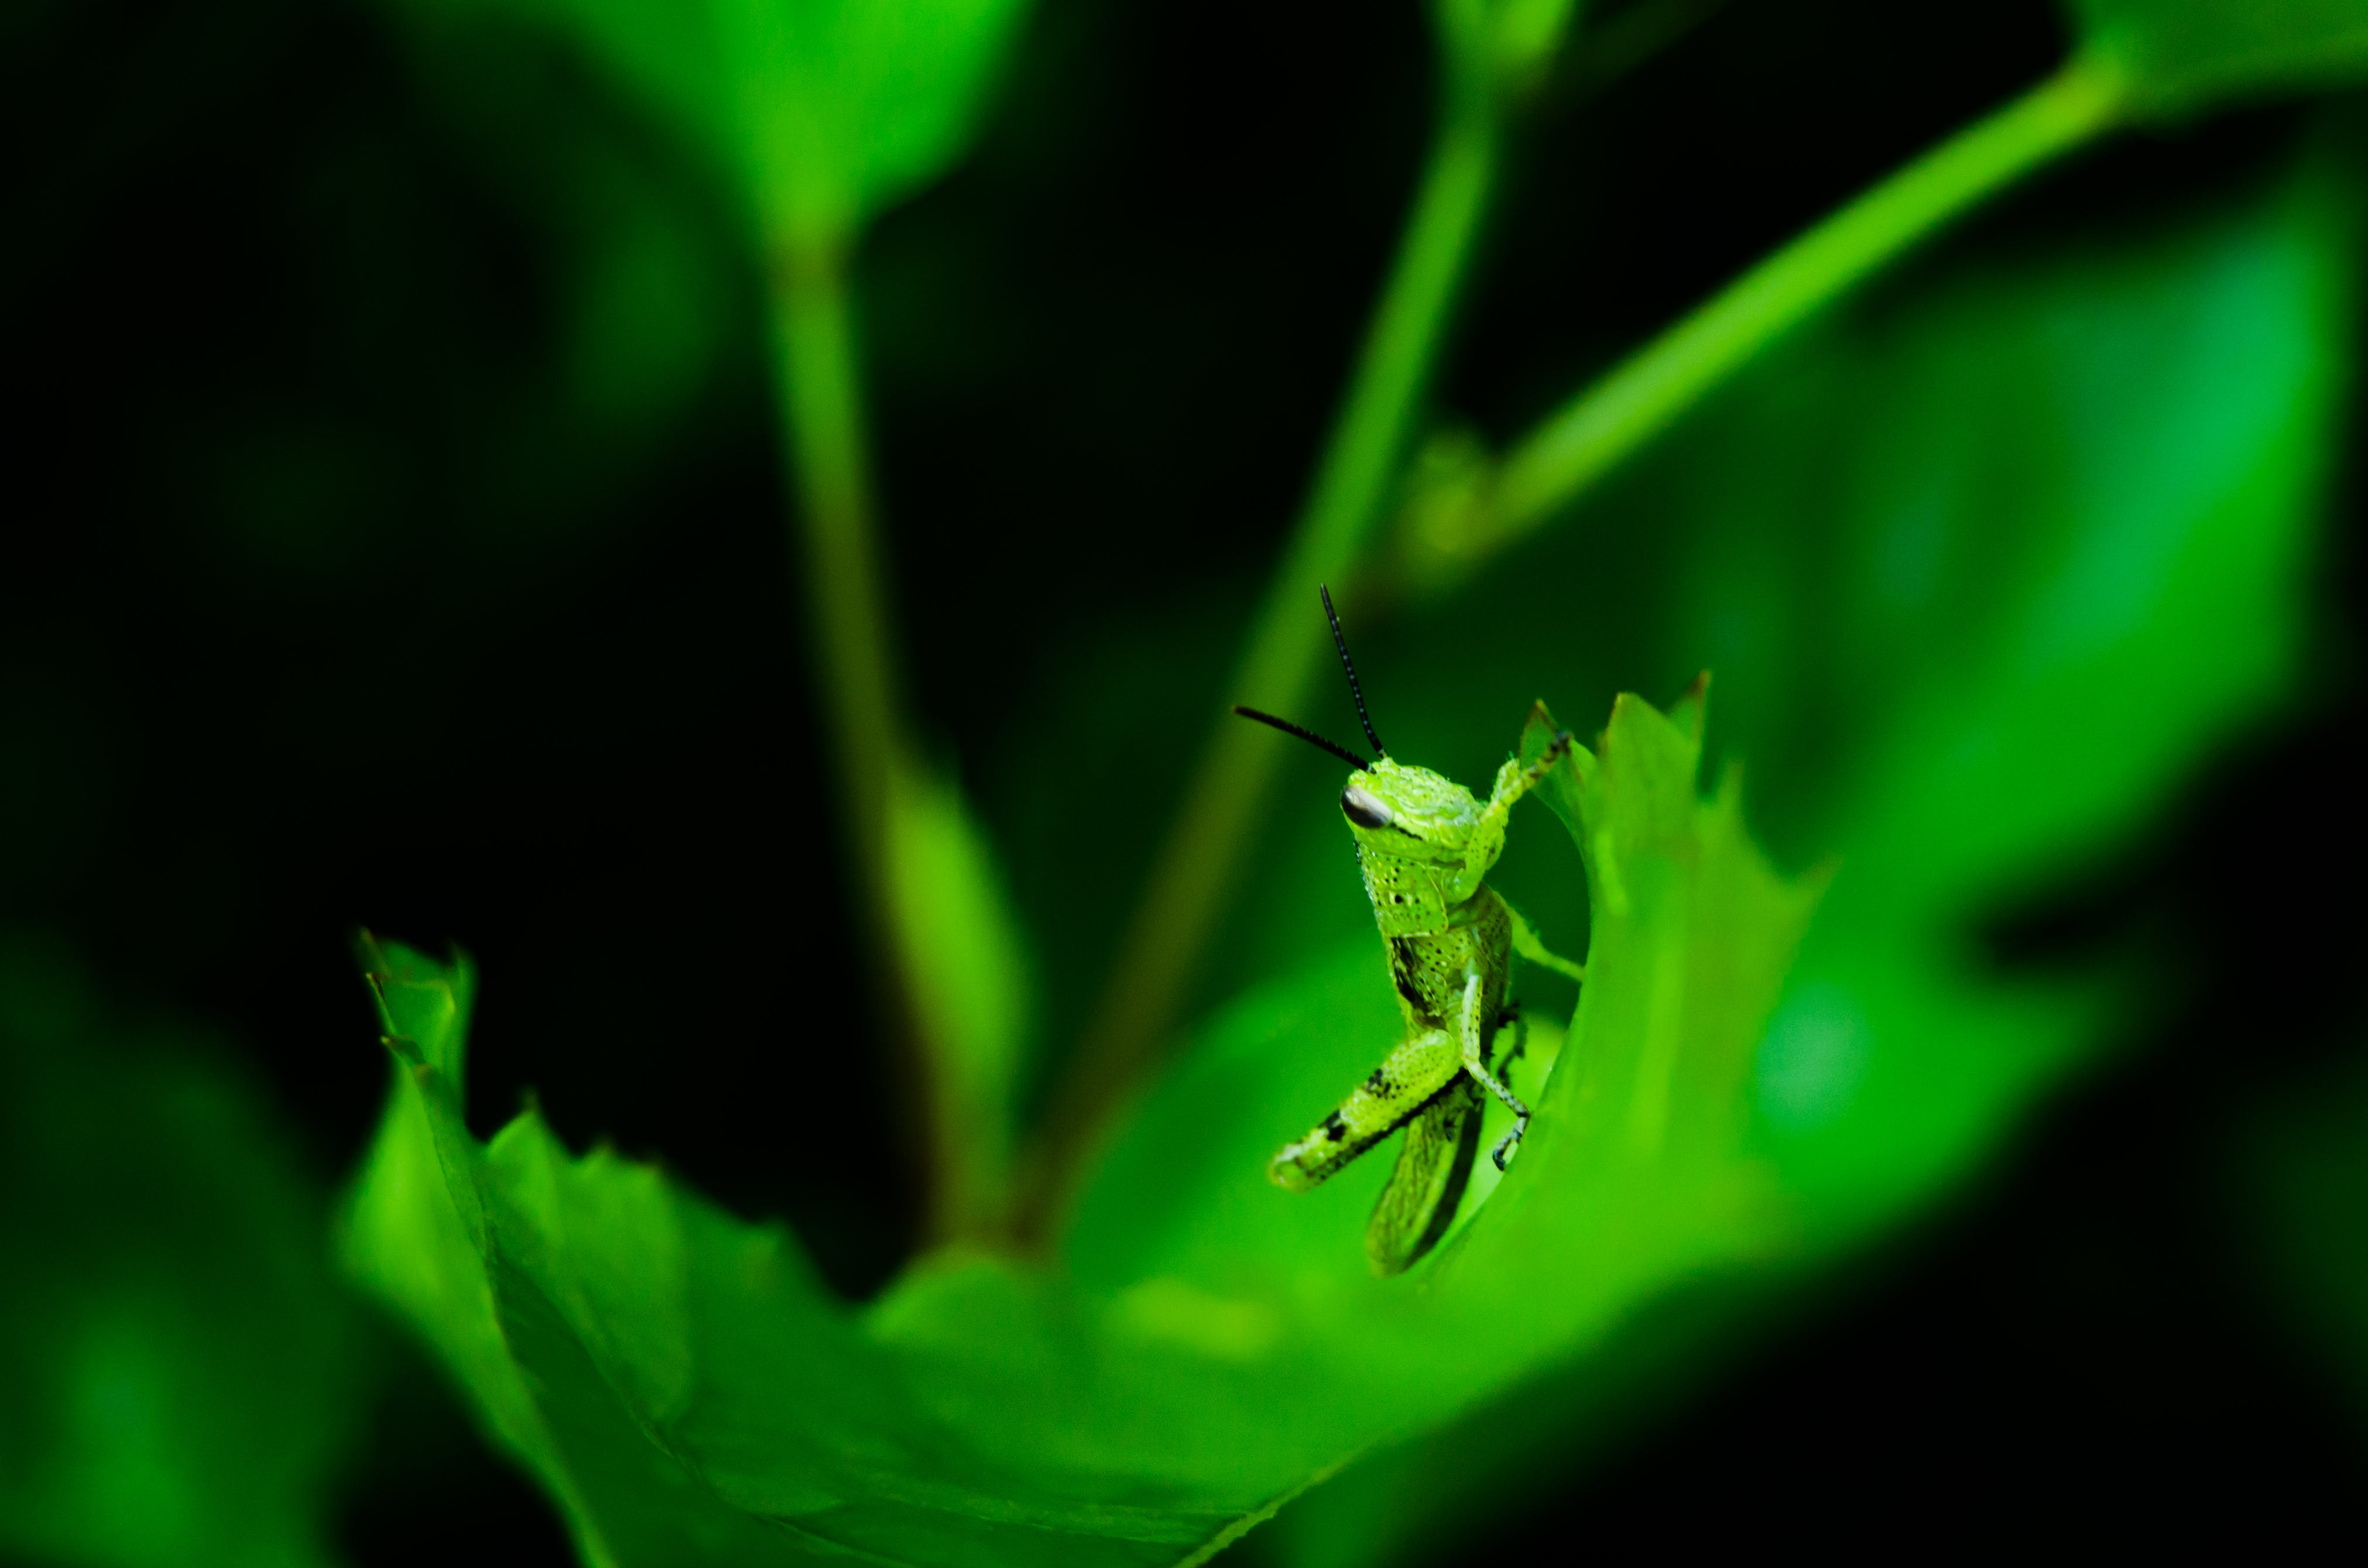 Free stock photo of grasshopper, green leaf, leaves